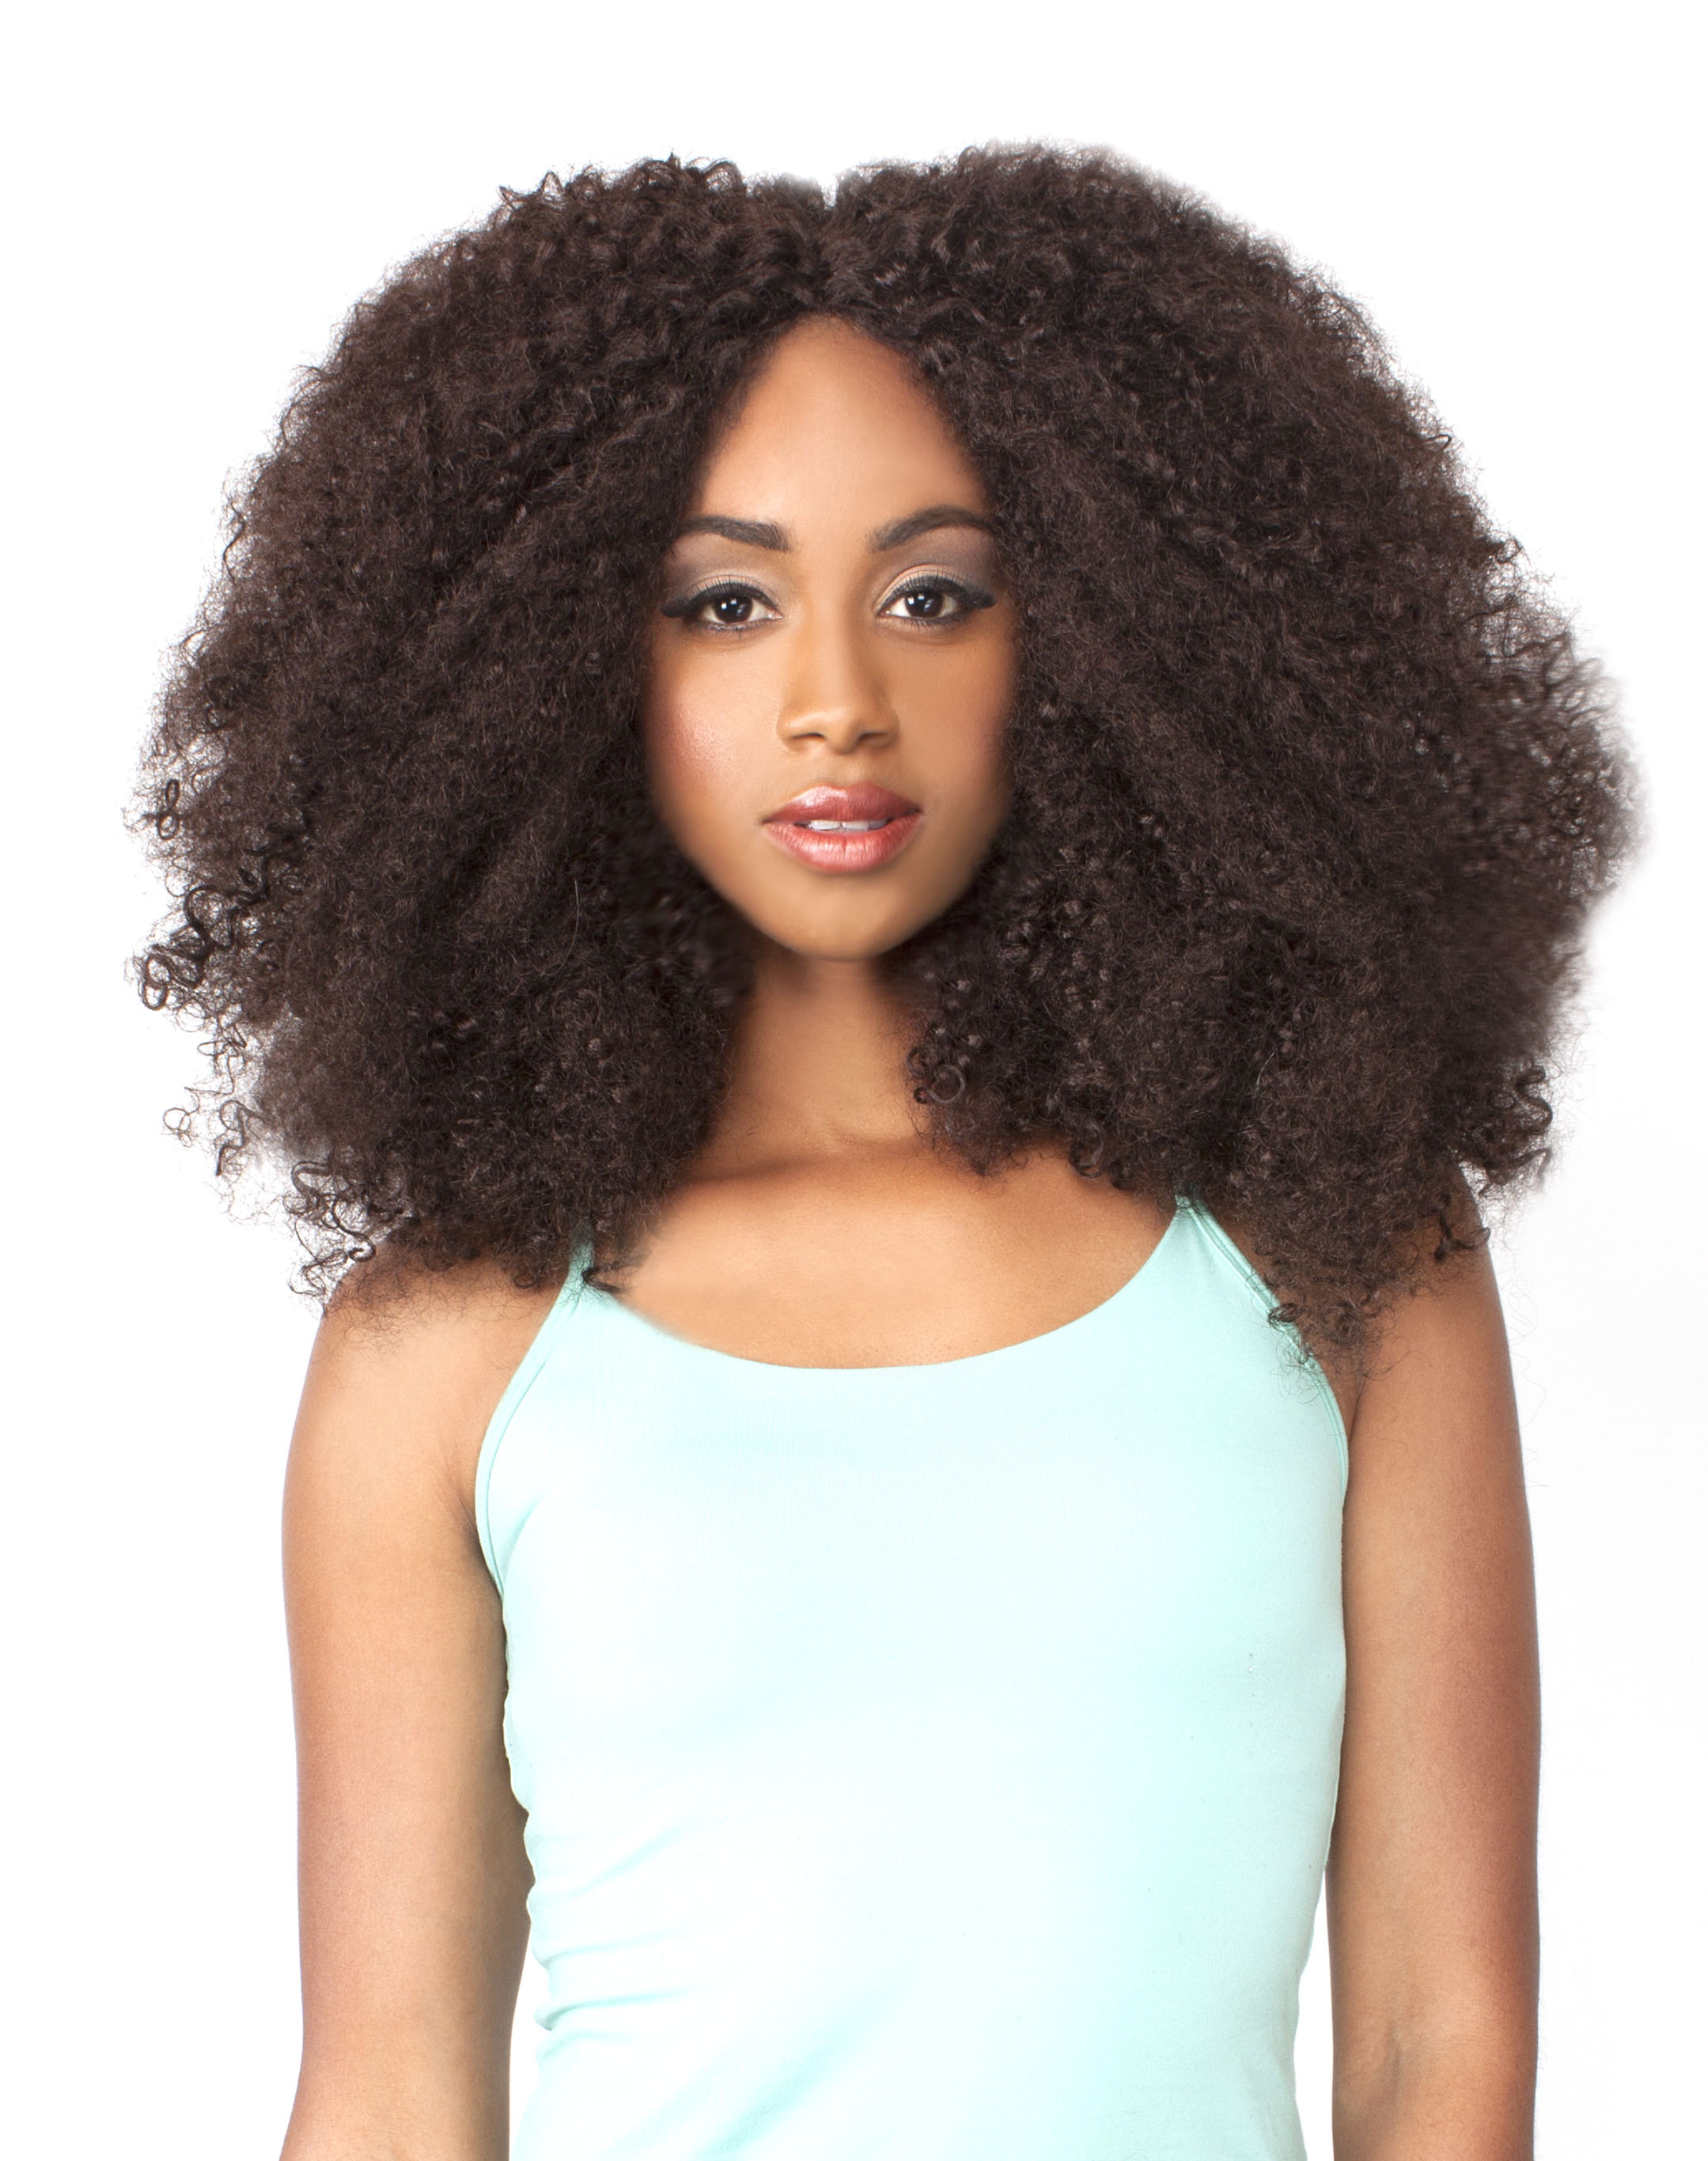 Lh Afro Kinky The Wig Brazilian Human Hair Blend